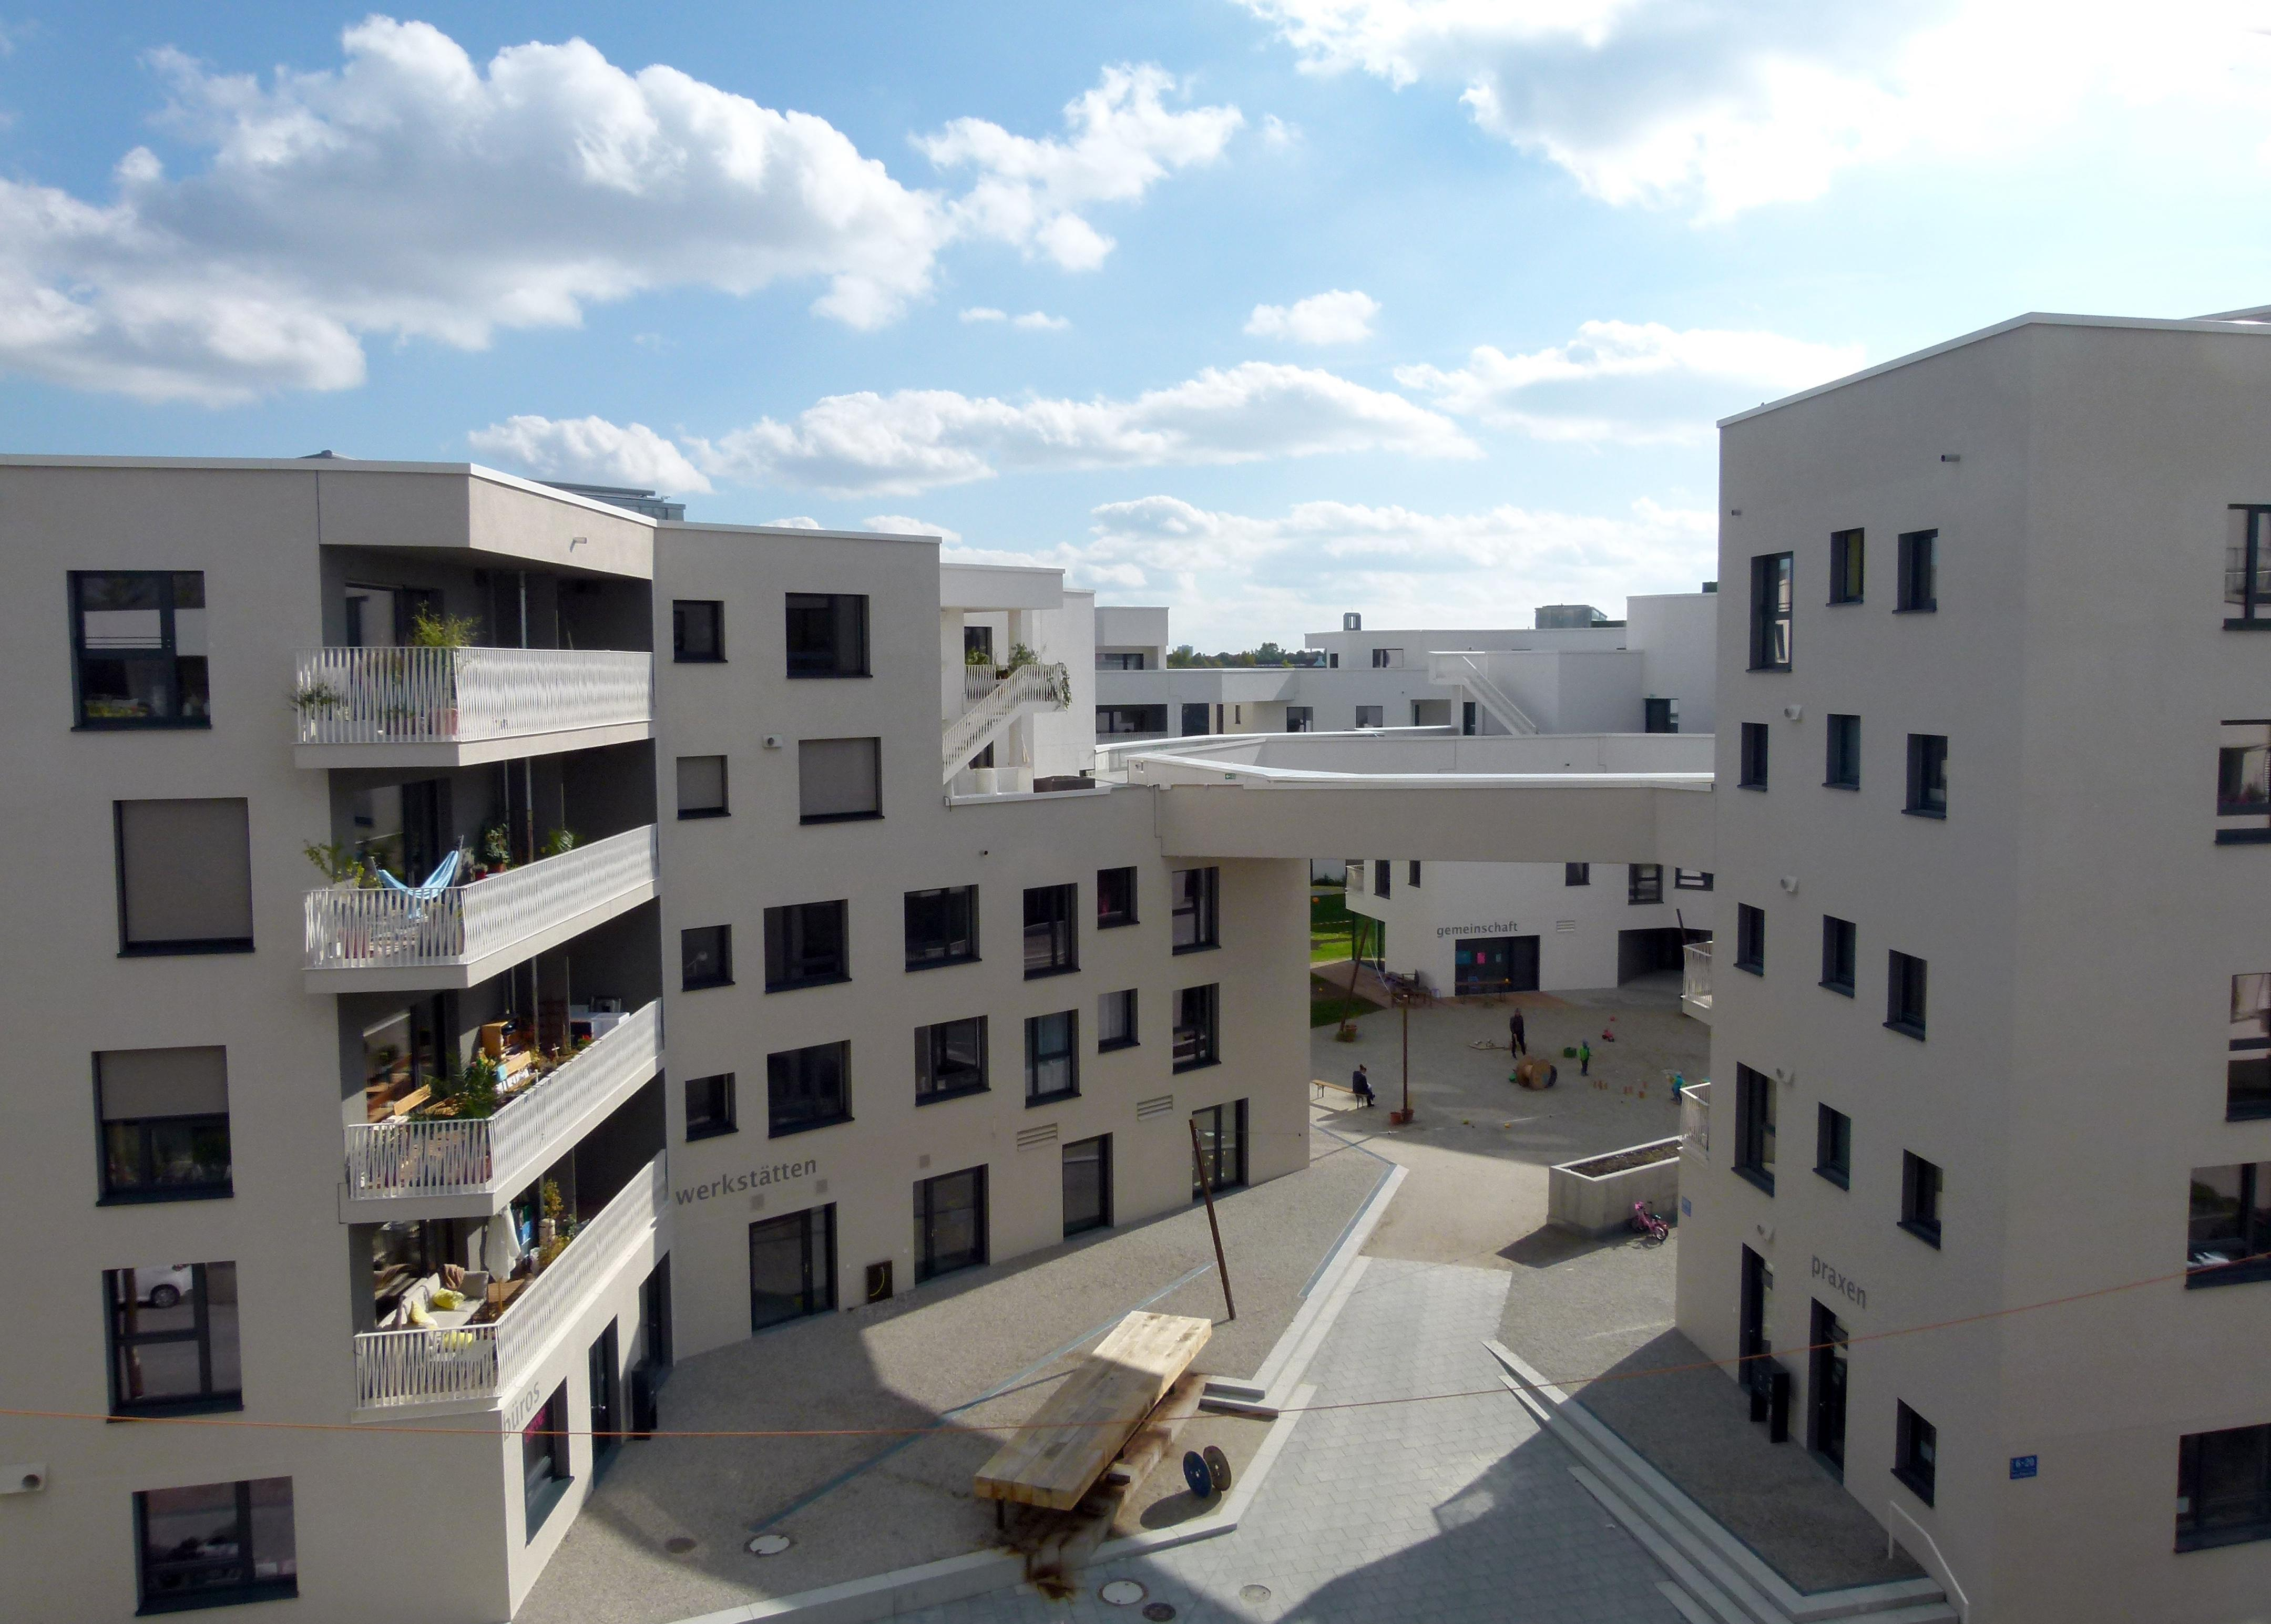 WagnisART complex is a recently award winning cooperative housing project in Munich. Copyright: Claudia Neeser.